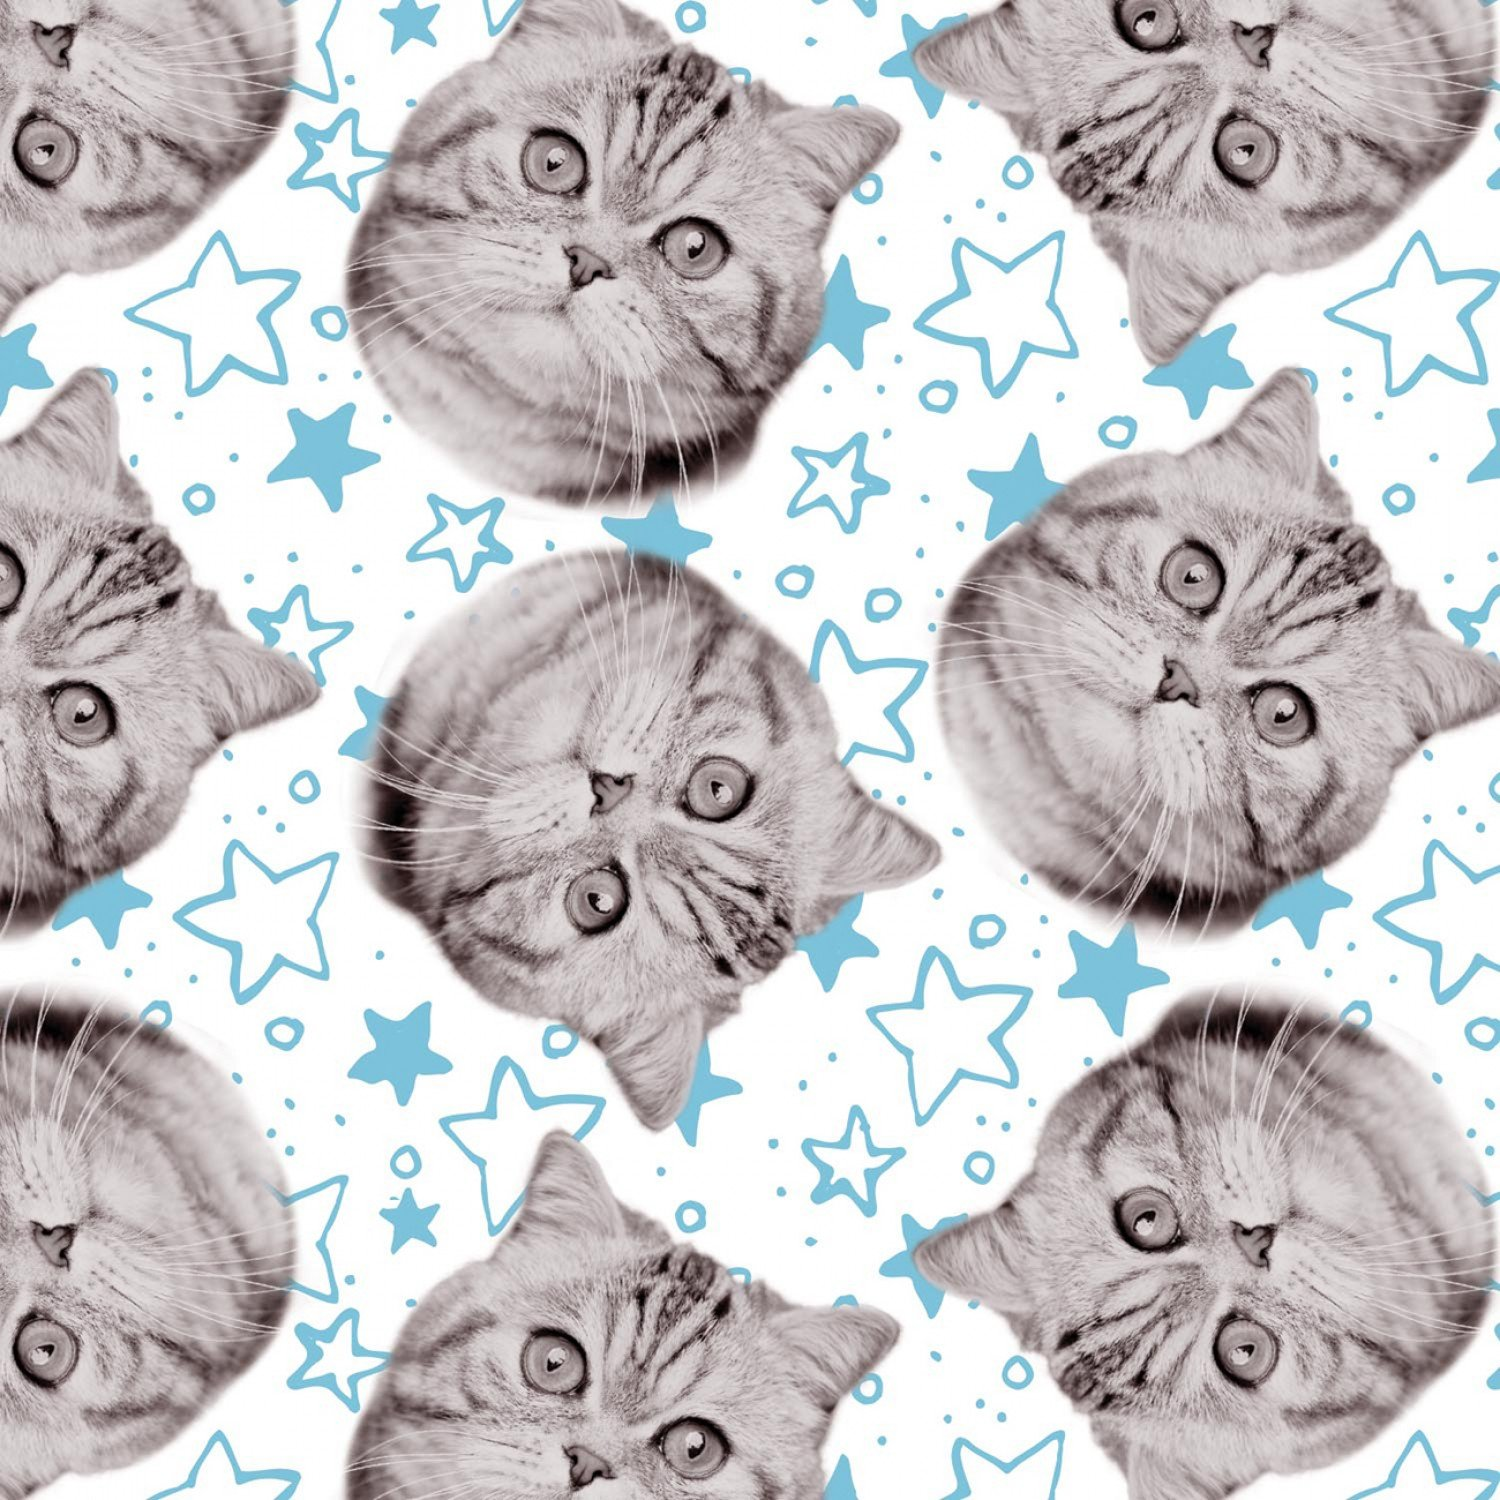 Camelot Fabrics Cats Rule by Rachael Hale 34180102 2 White Superstars $10.20/yd